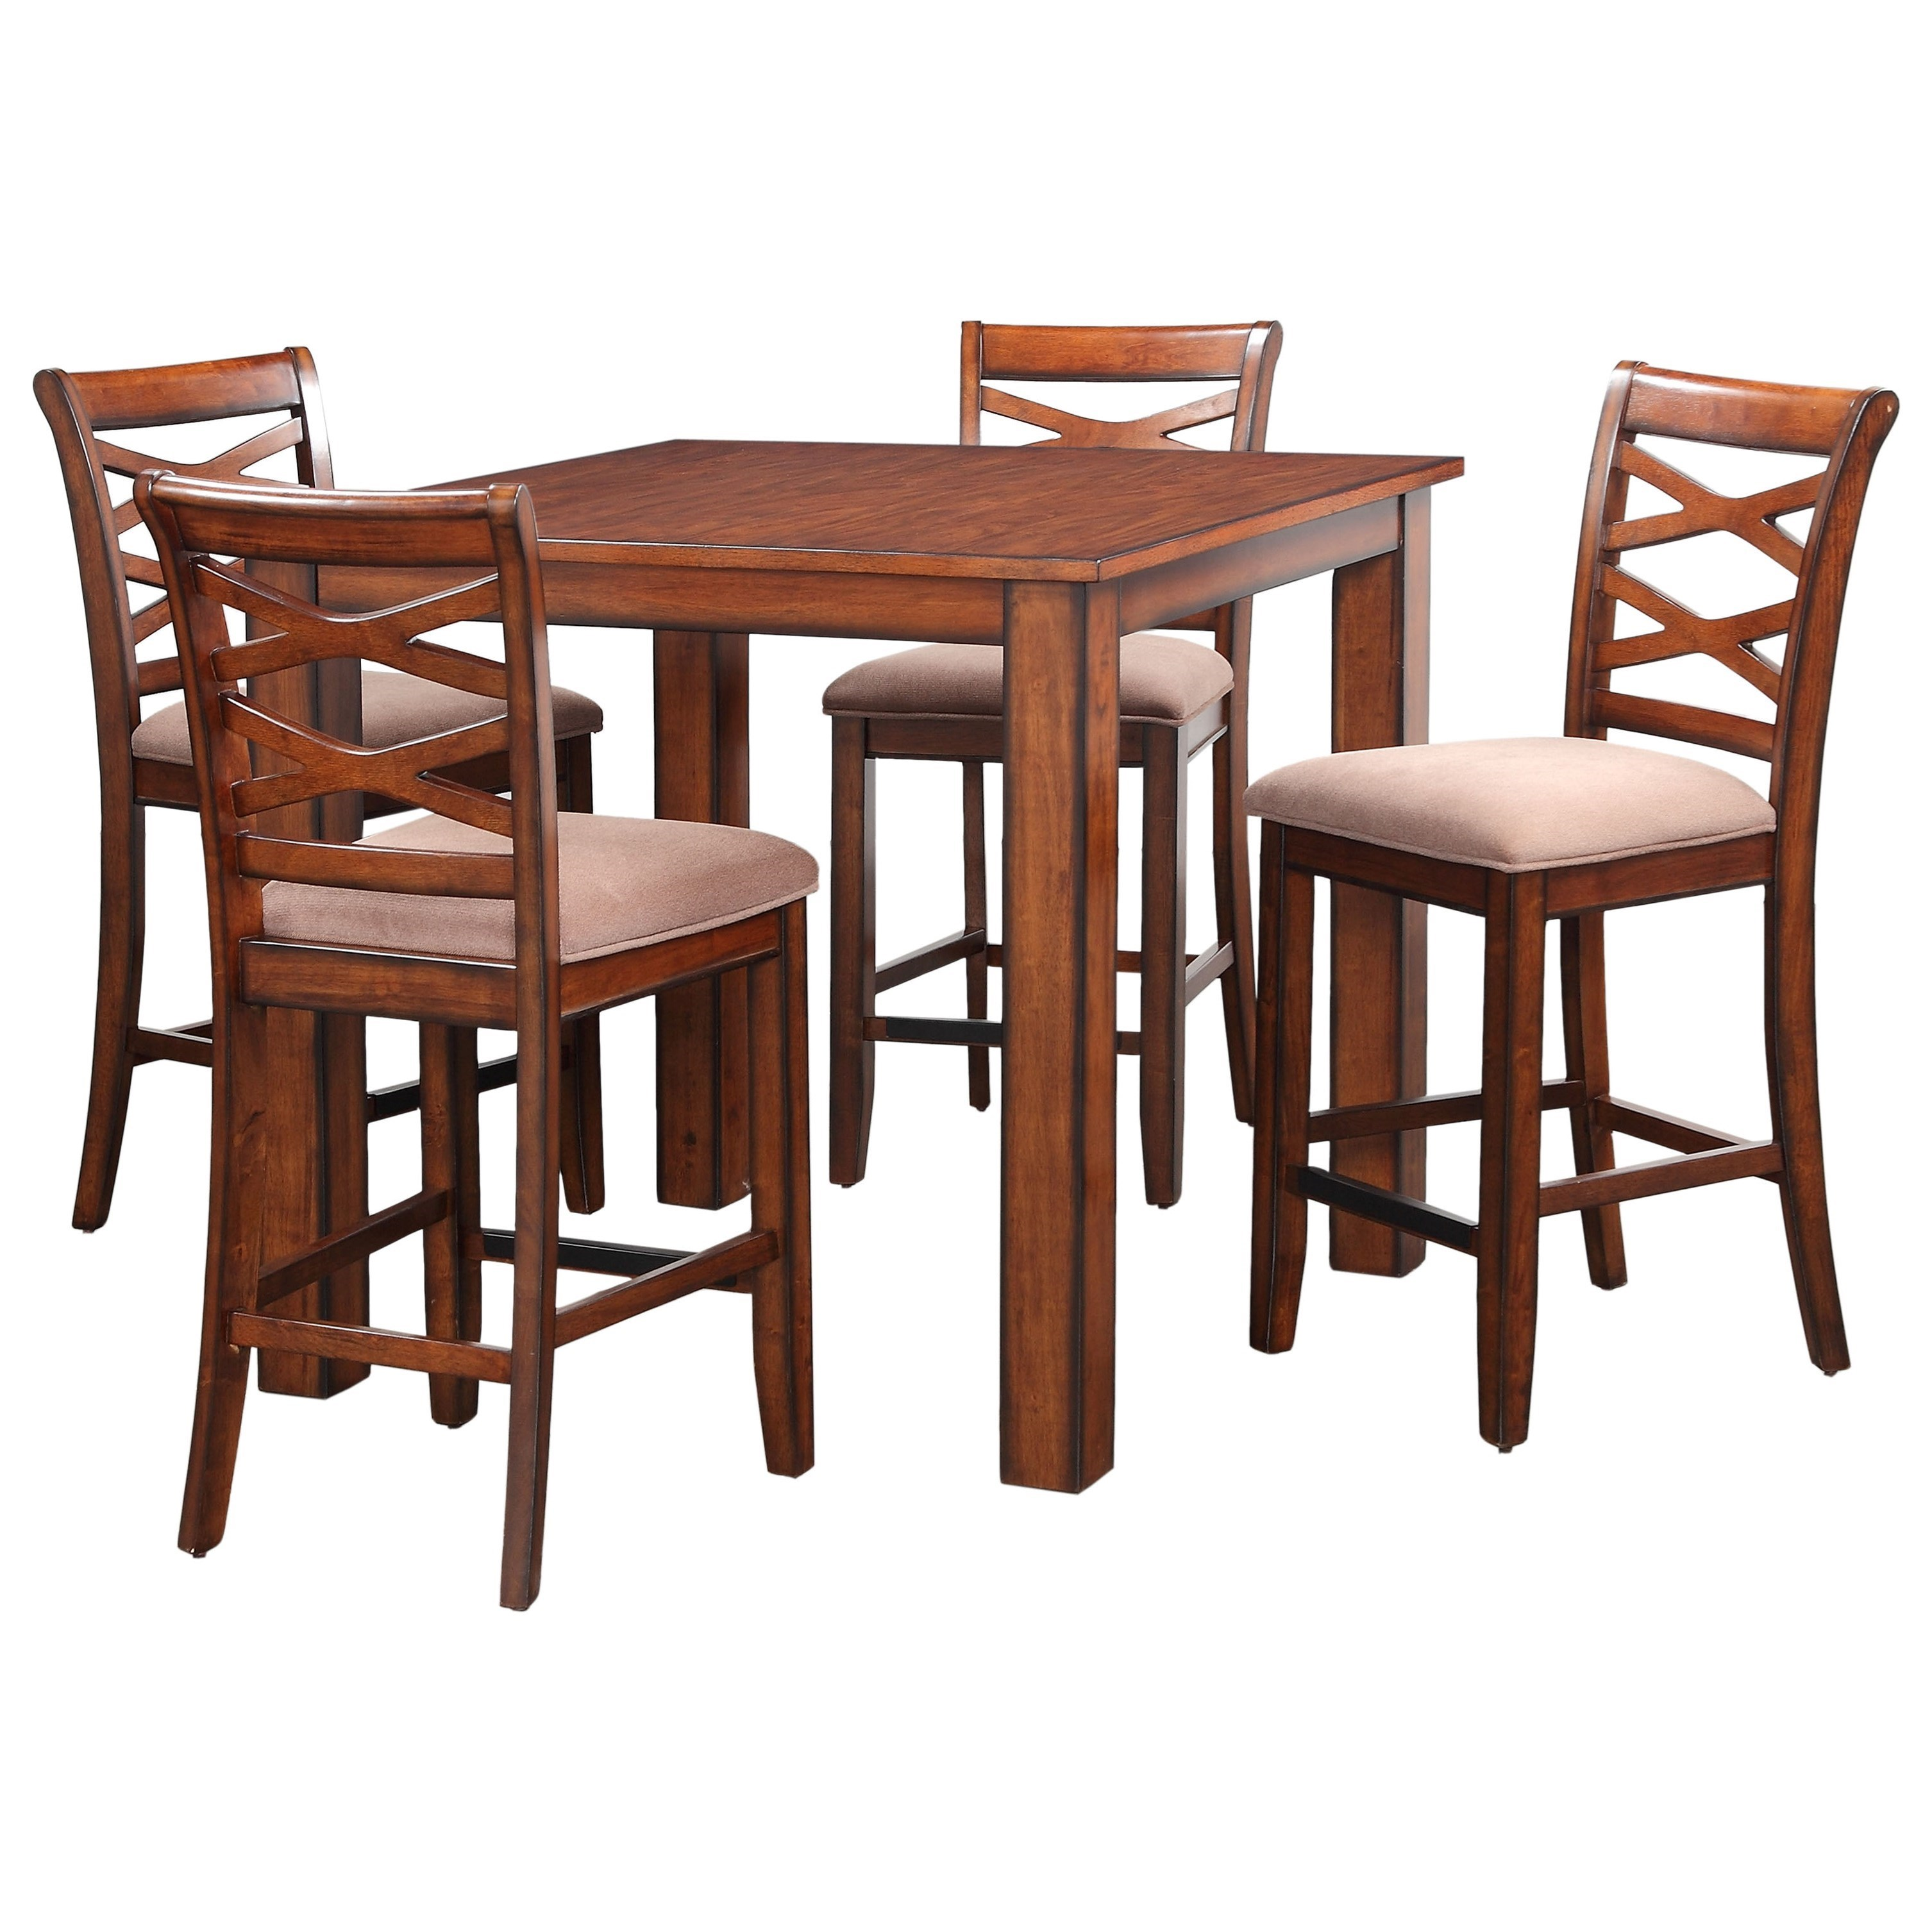 Standard Furniture Redondo Table and Chair Set - Item Number: 11223